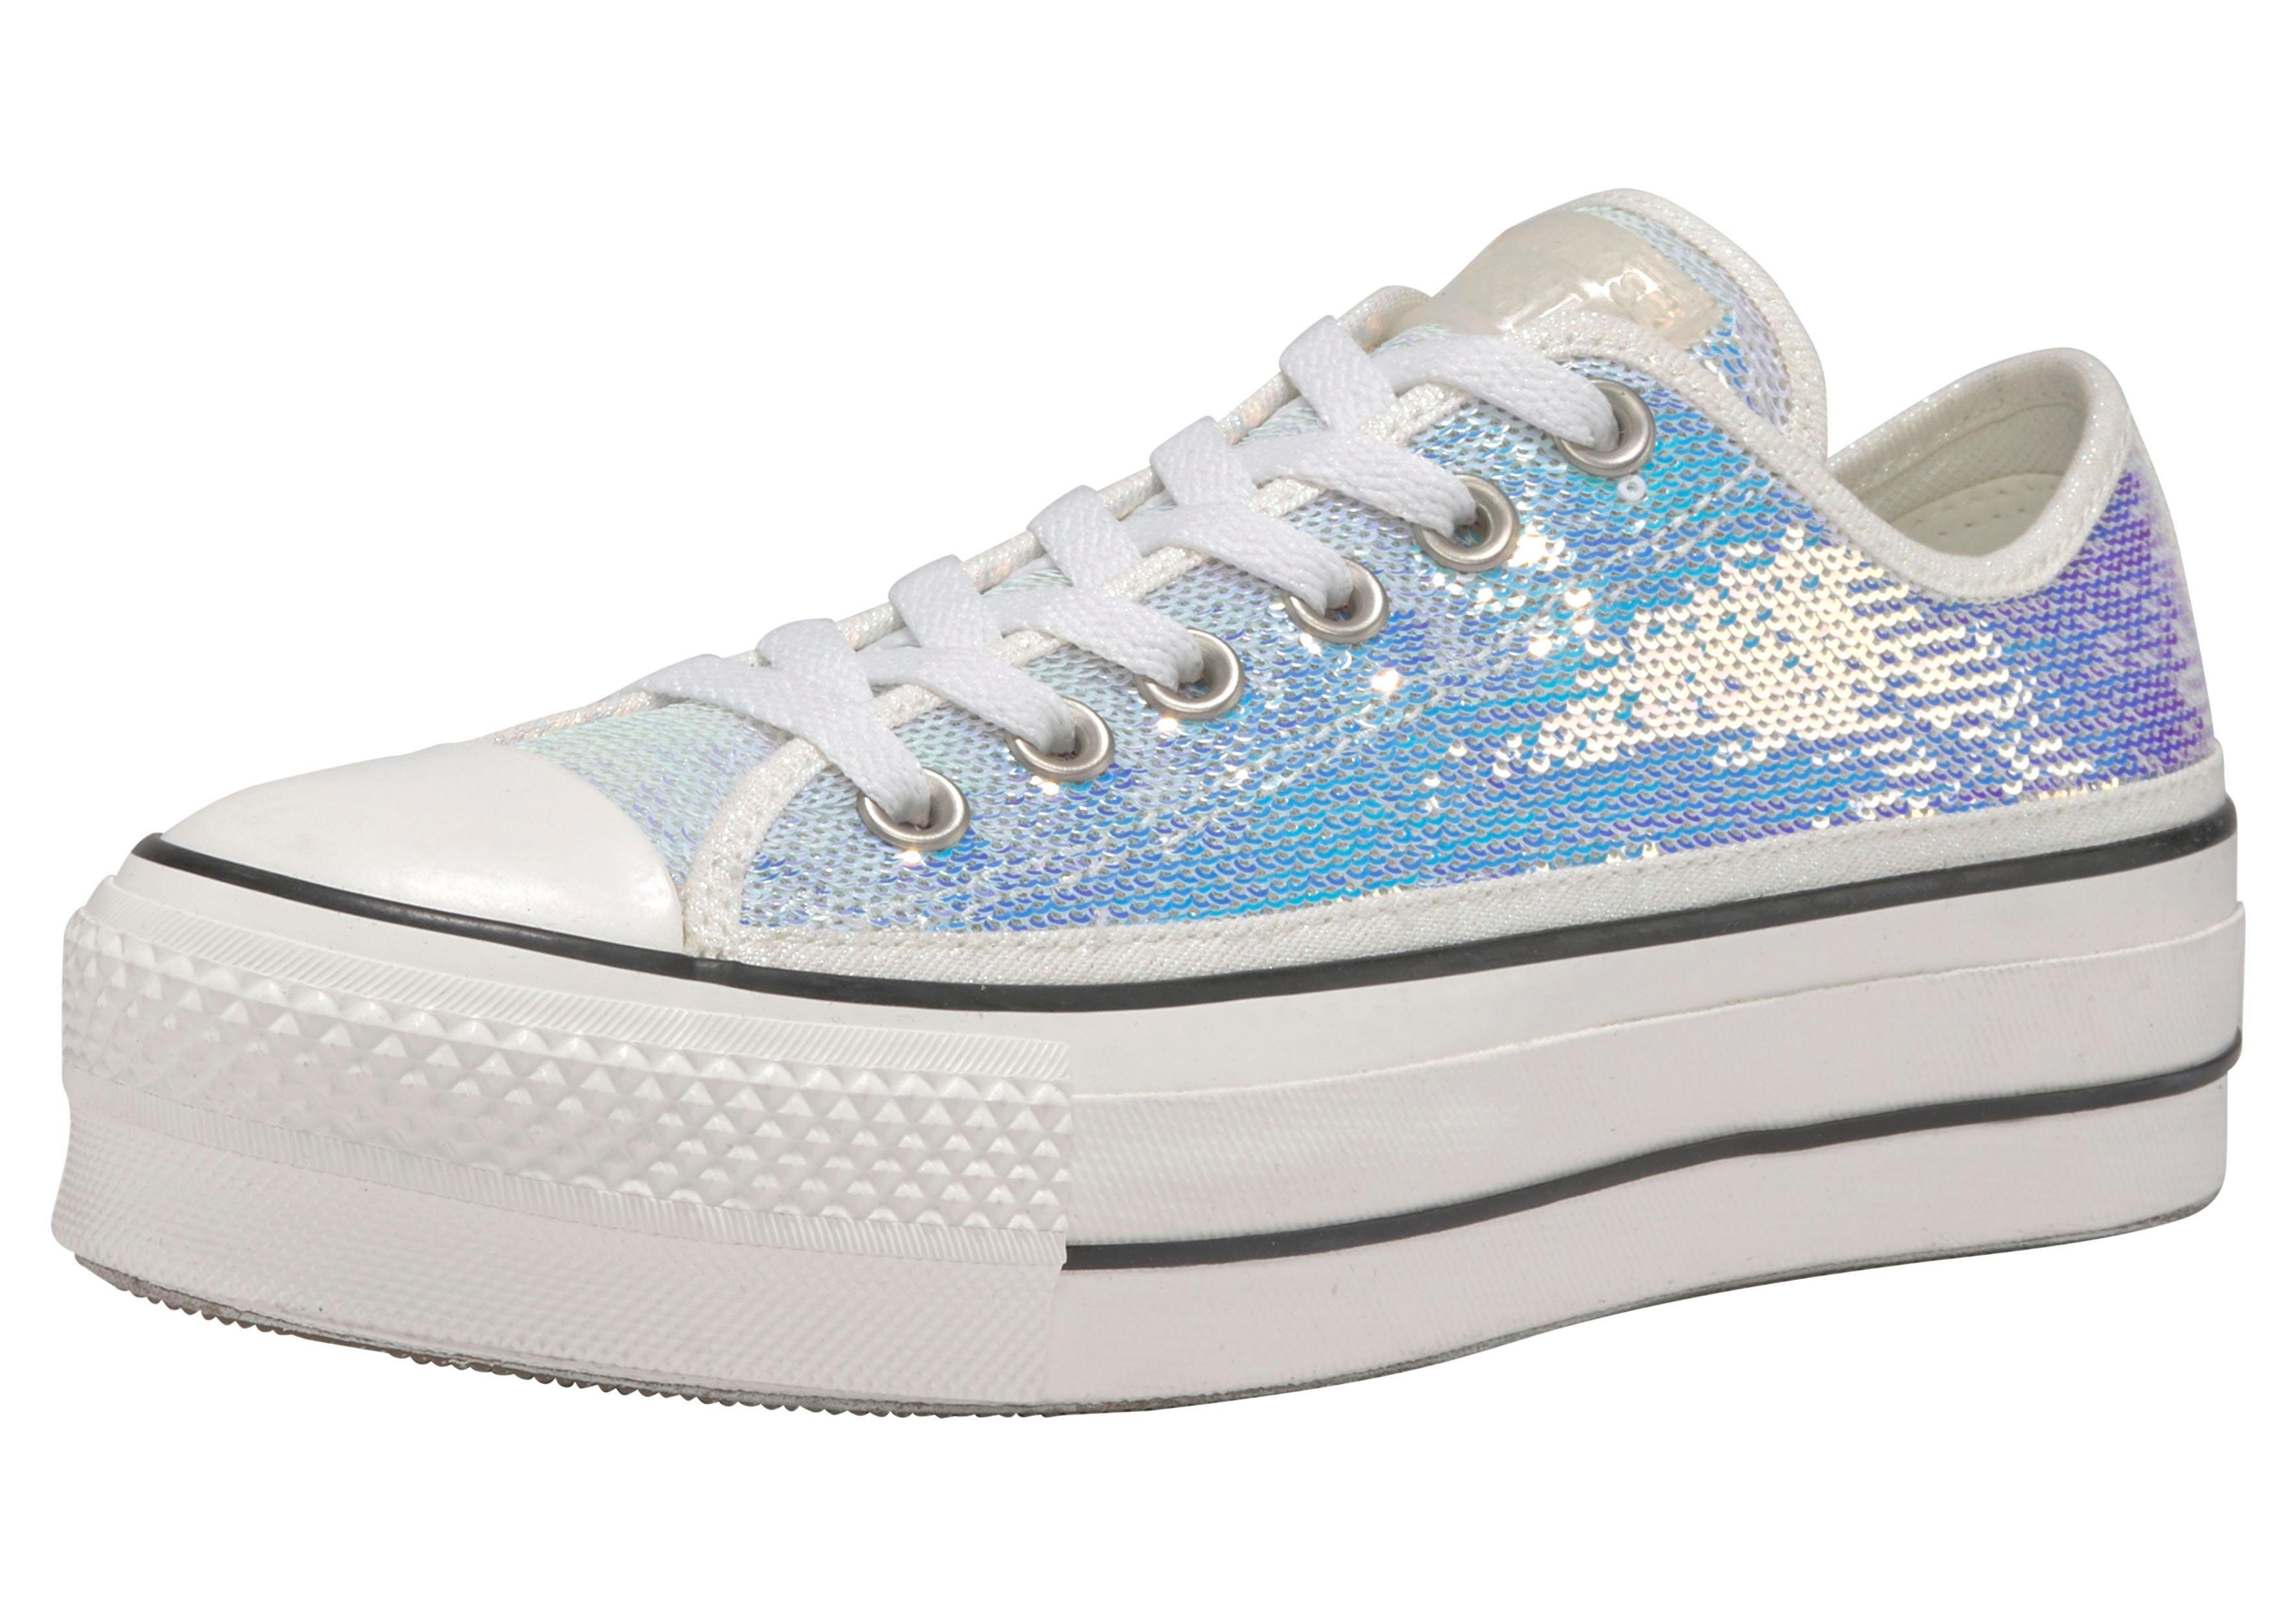 Converse »Chuck Taylor All Star Lift Ox Sparkling Pack« Plateausneaker online kaufen | OTTO